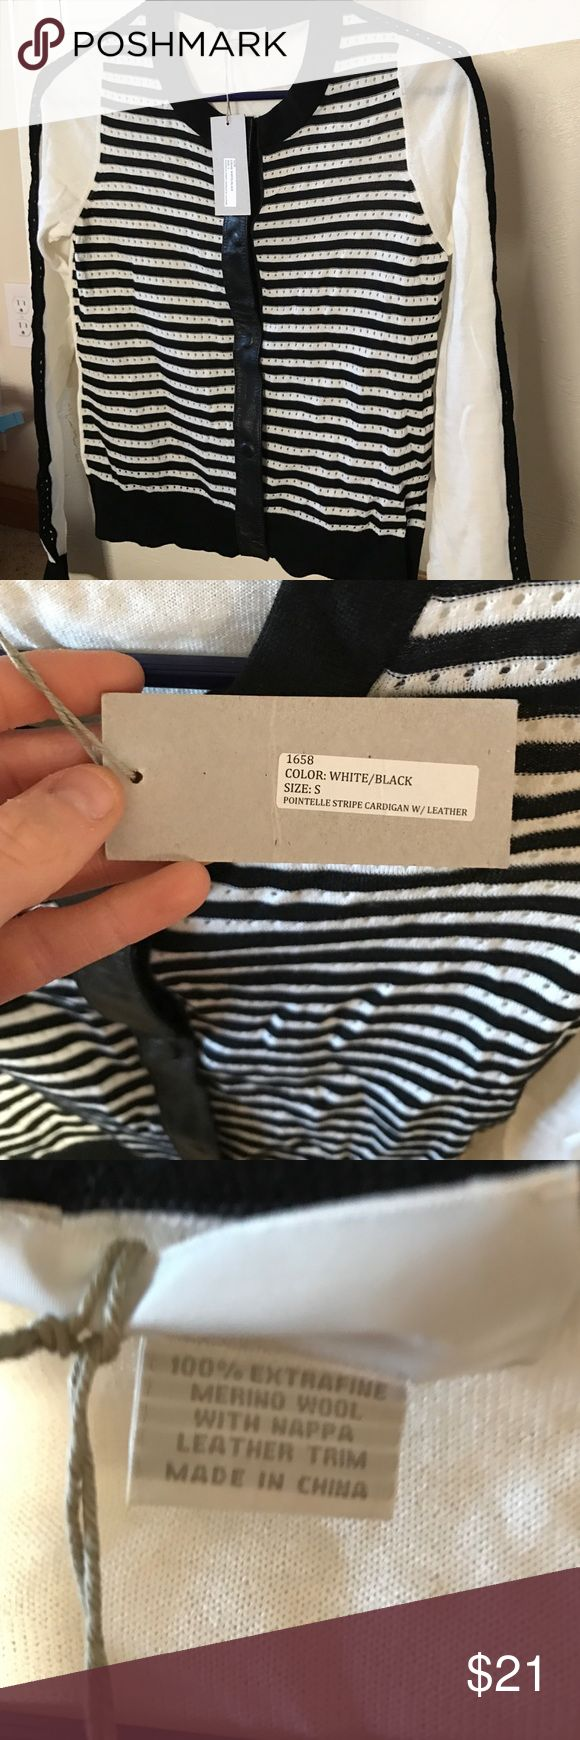 New with tags-Black and White striped cardigan New with tags-never worn. Pointelle stripe cardigan with leather down the middle. Smoke-free/pet-free home. Size small M.Patmos Tops